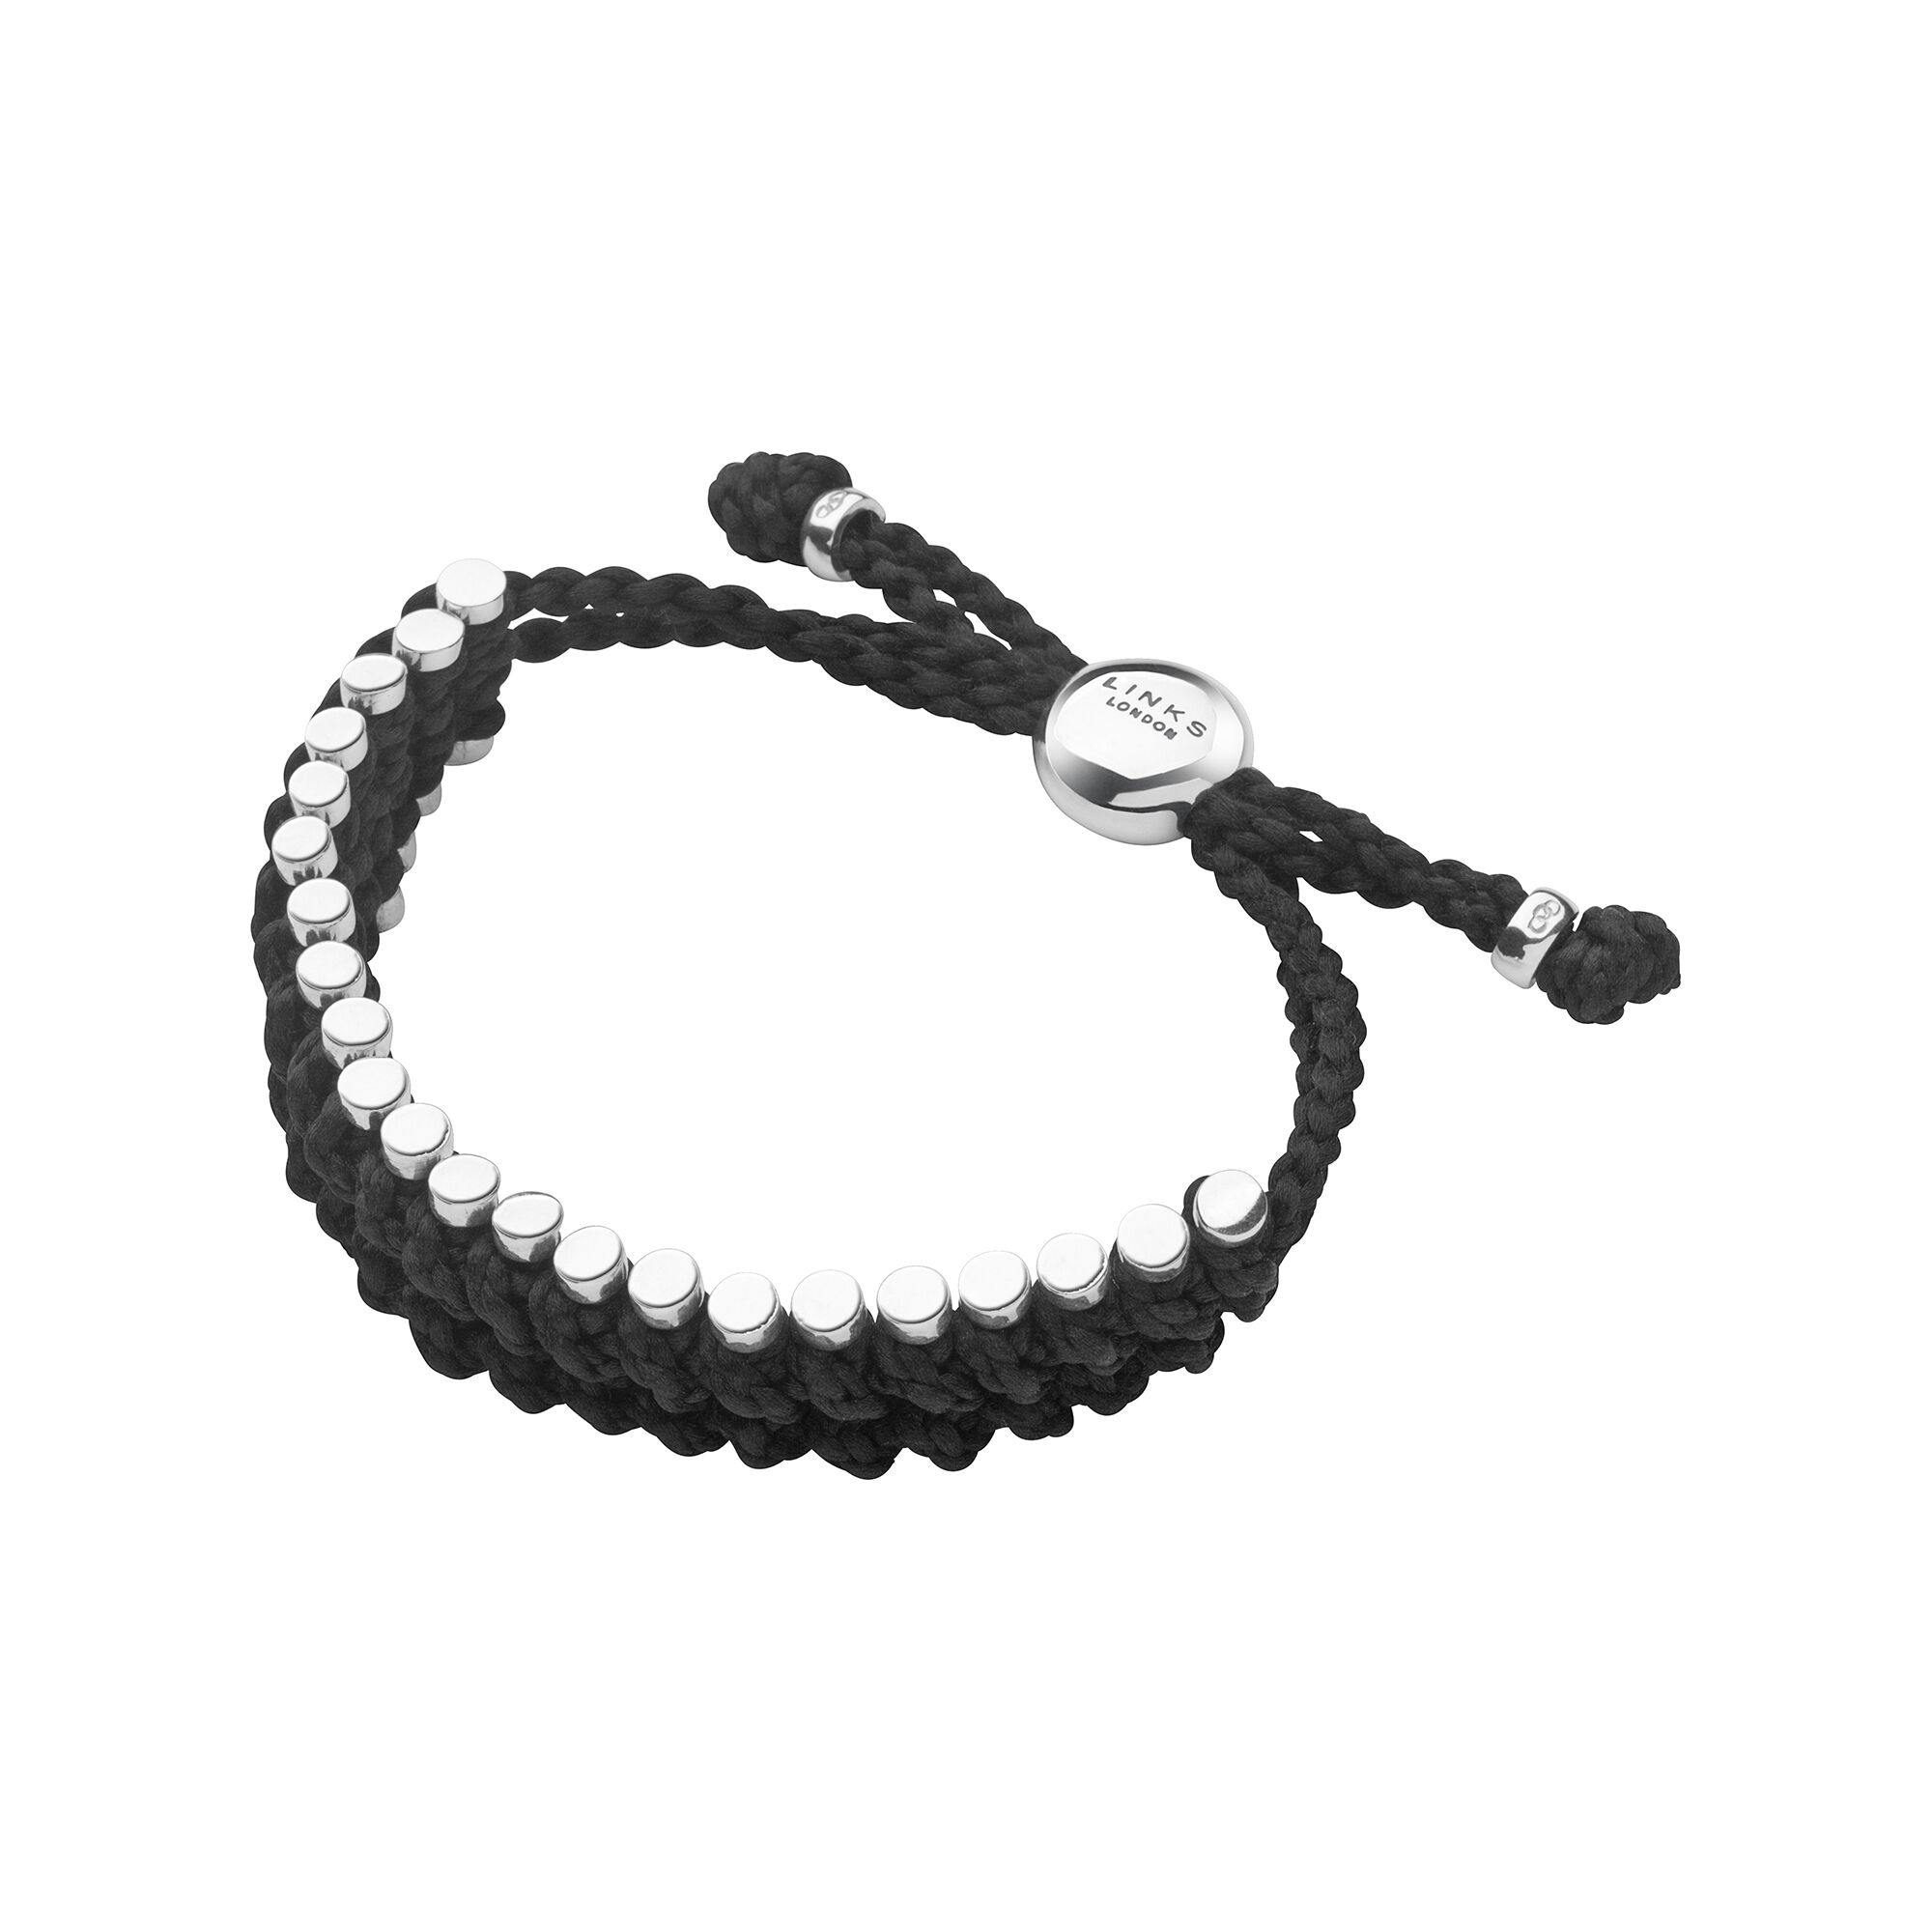 uk men hillier black bracelet image mens from s rope jewellers jewellery